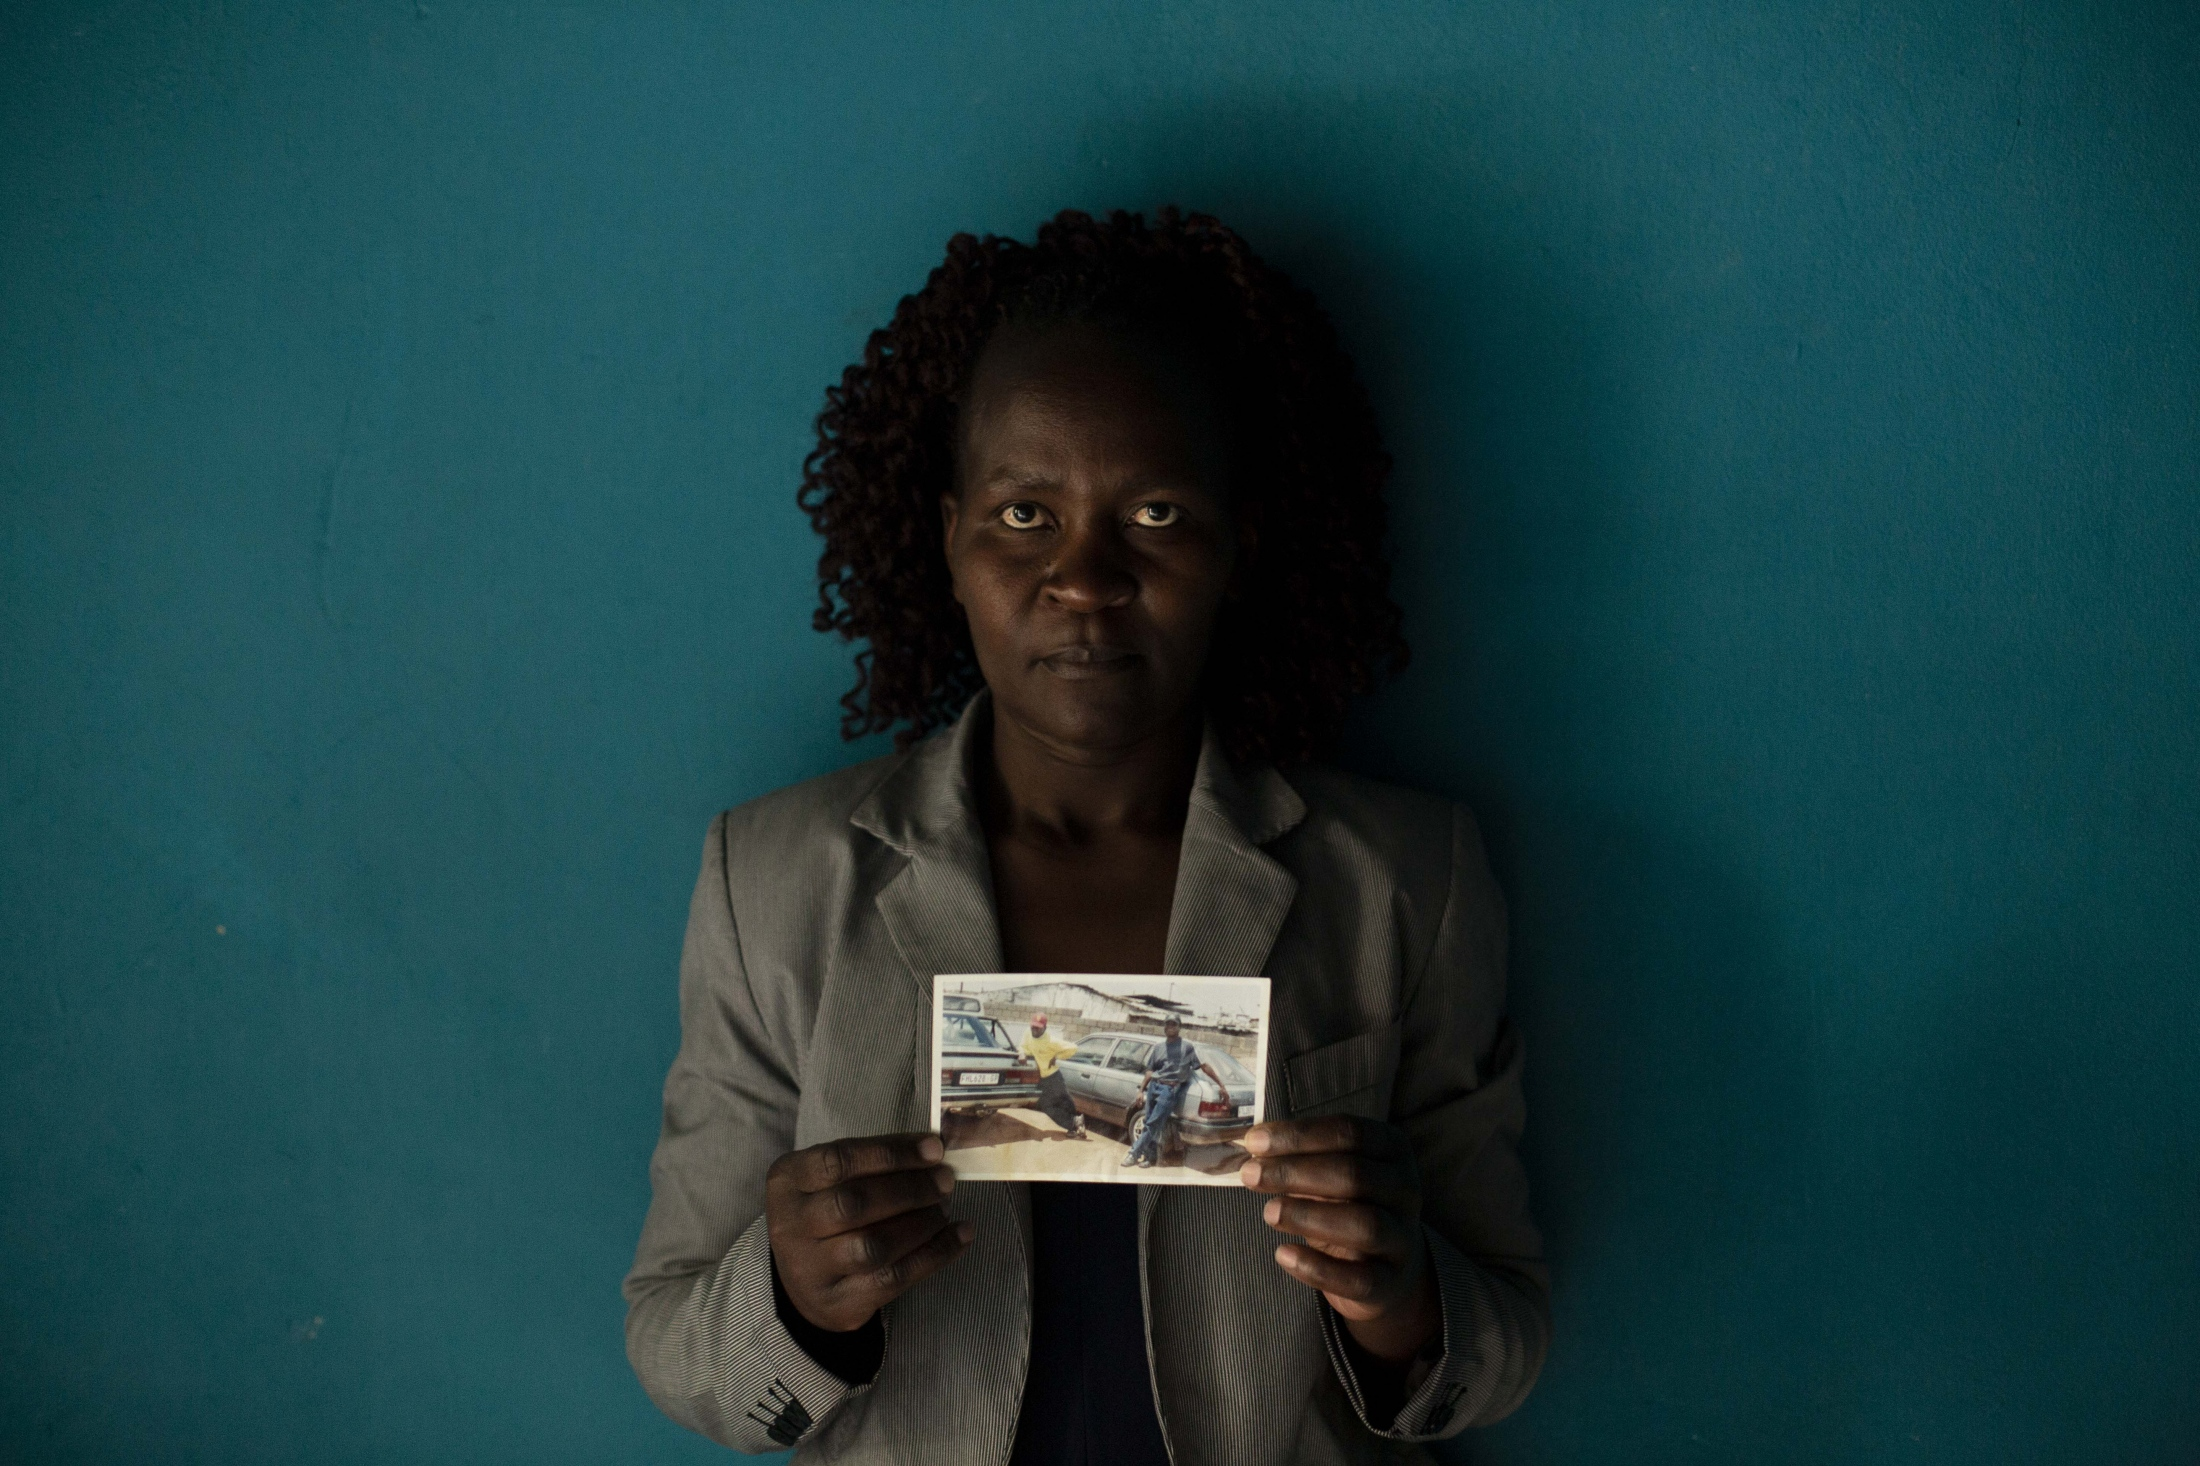 In this Friday, Aug. 24, 2018 photo, Zimbabwean migrant Banele Nkomo holds a photograph of her missing brother, Francis. She doesn't know what happened to him and hasn't from him for years. She says she misses him every day and wants to know whether he passed away and where his body is in order to find closure.